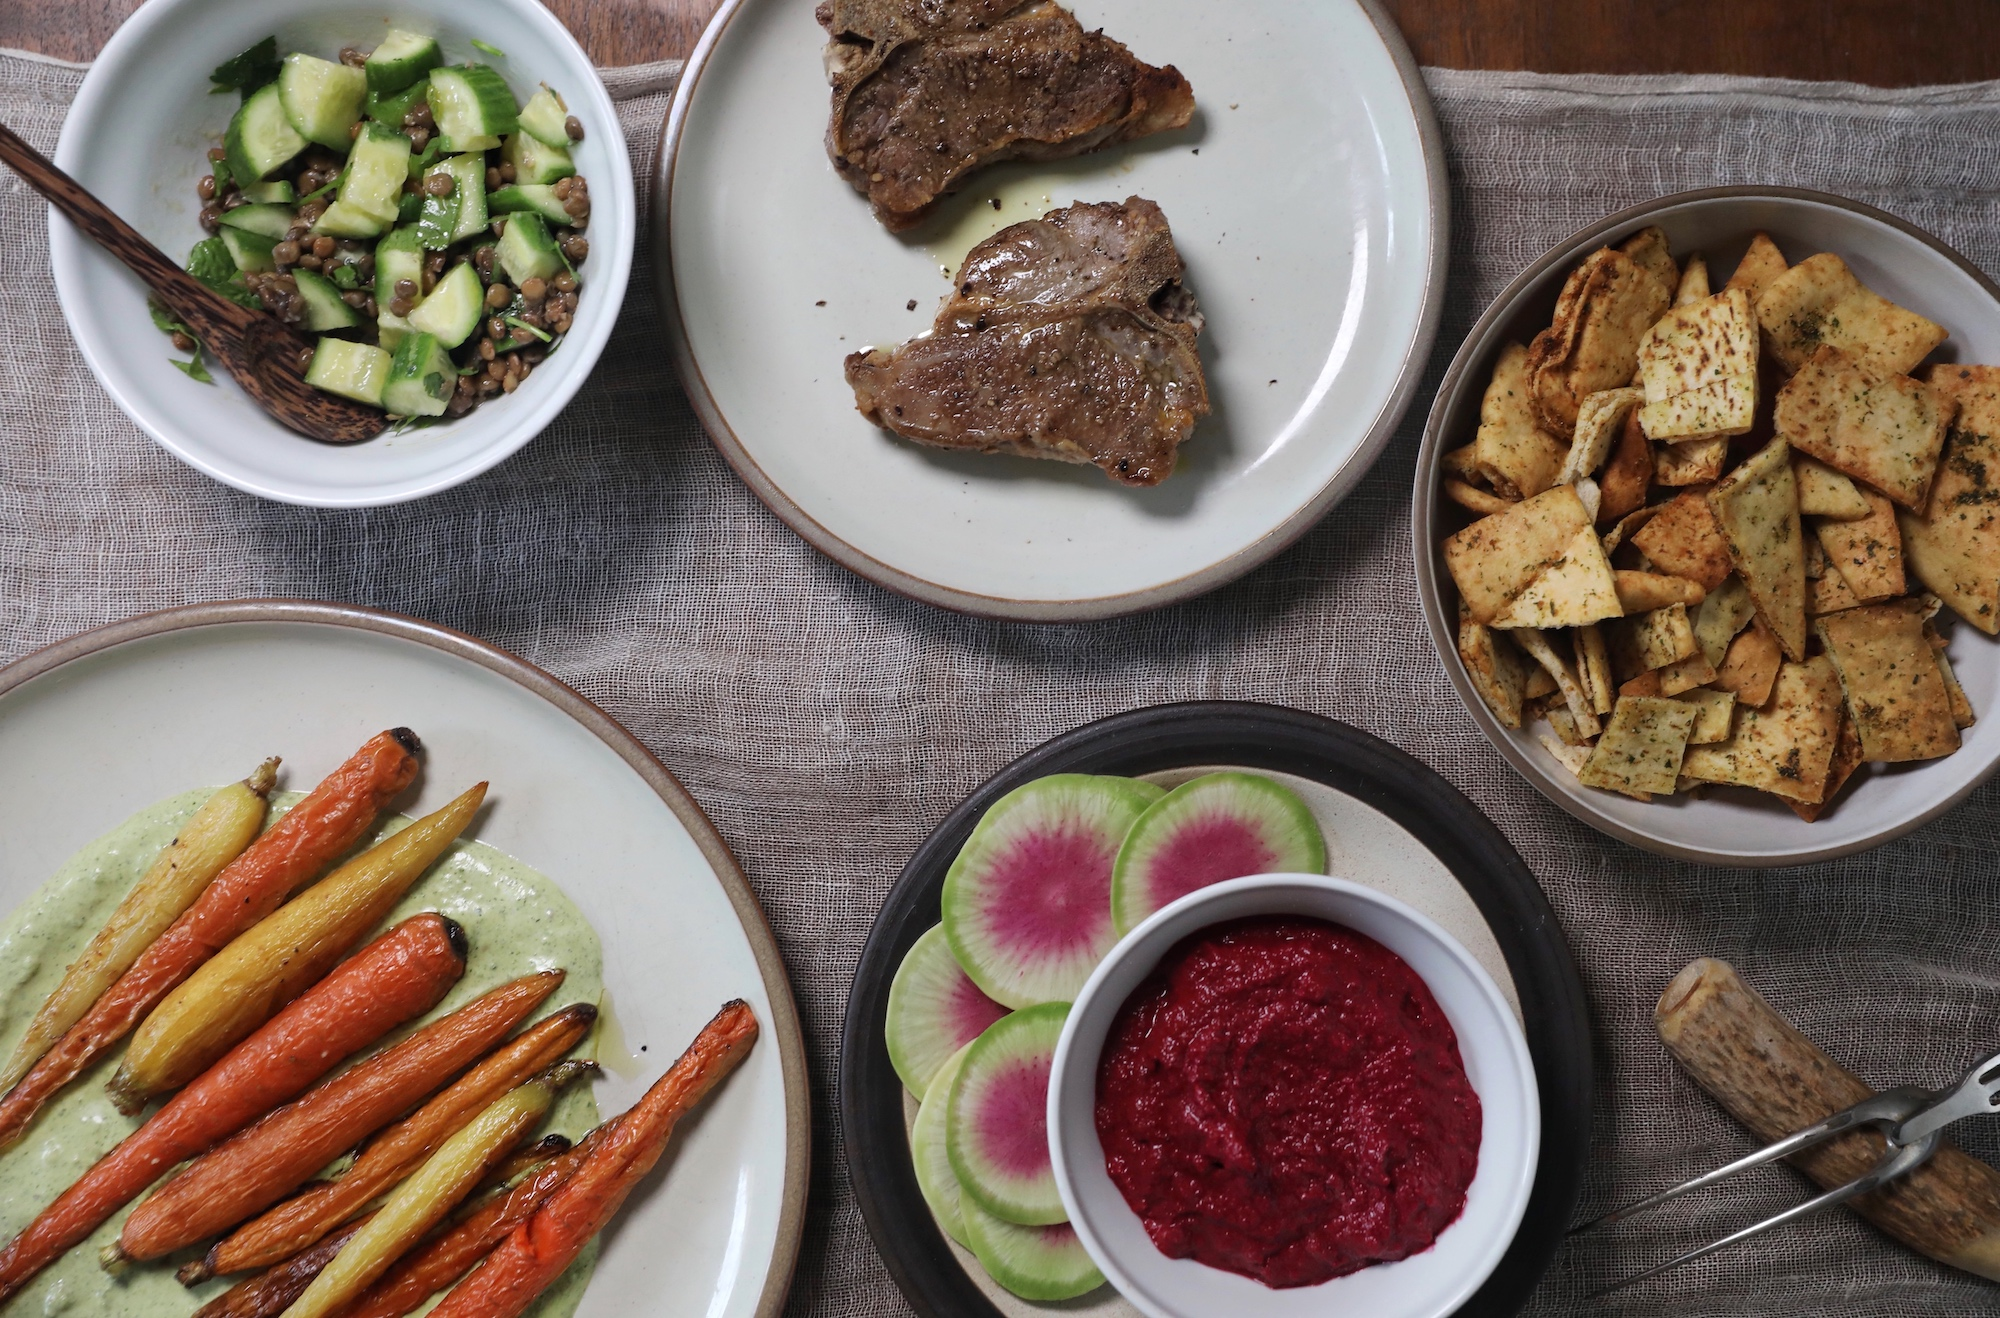 A peek at the little Middle Eastern inspired dinner spread I made, including a take on Israeli salad, roasted carrots on a labneh zhoug sauce, roasted lamb, and roasted beet and garlic dip.